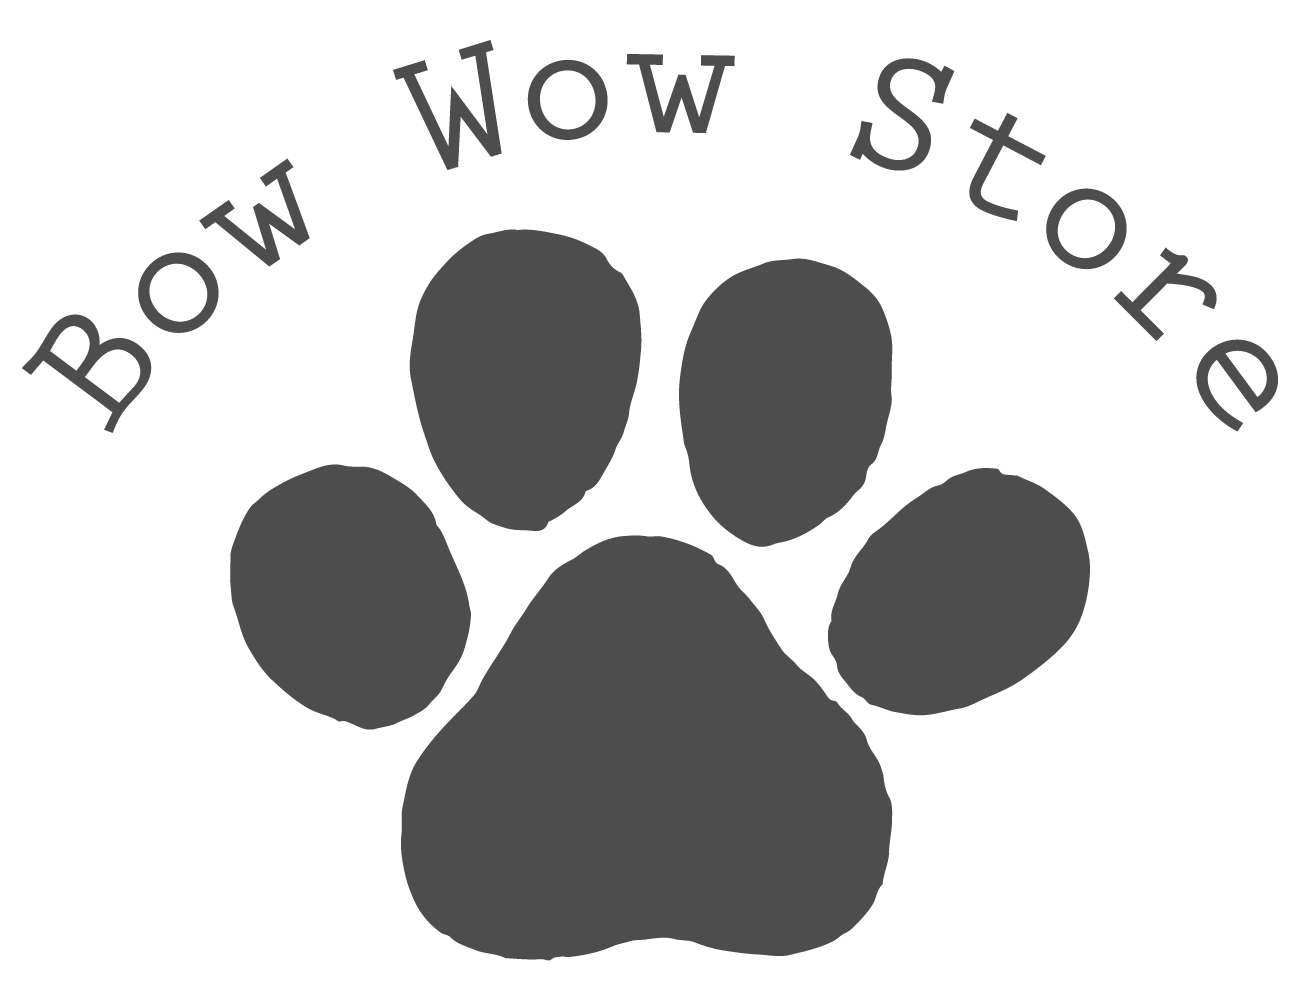 Bow Wow Store